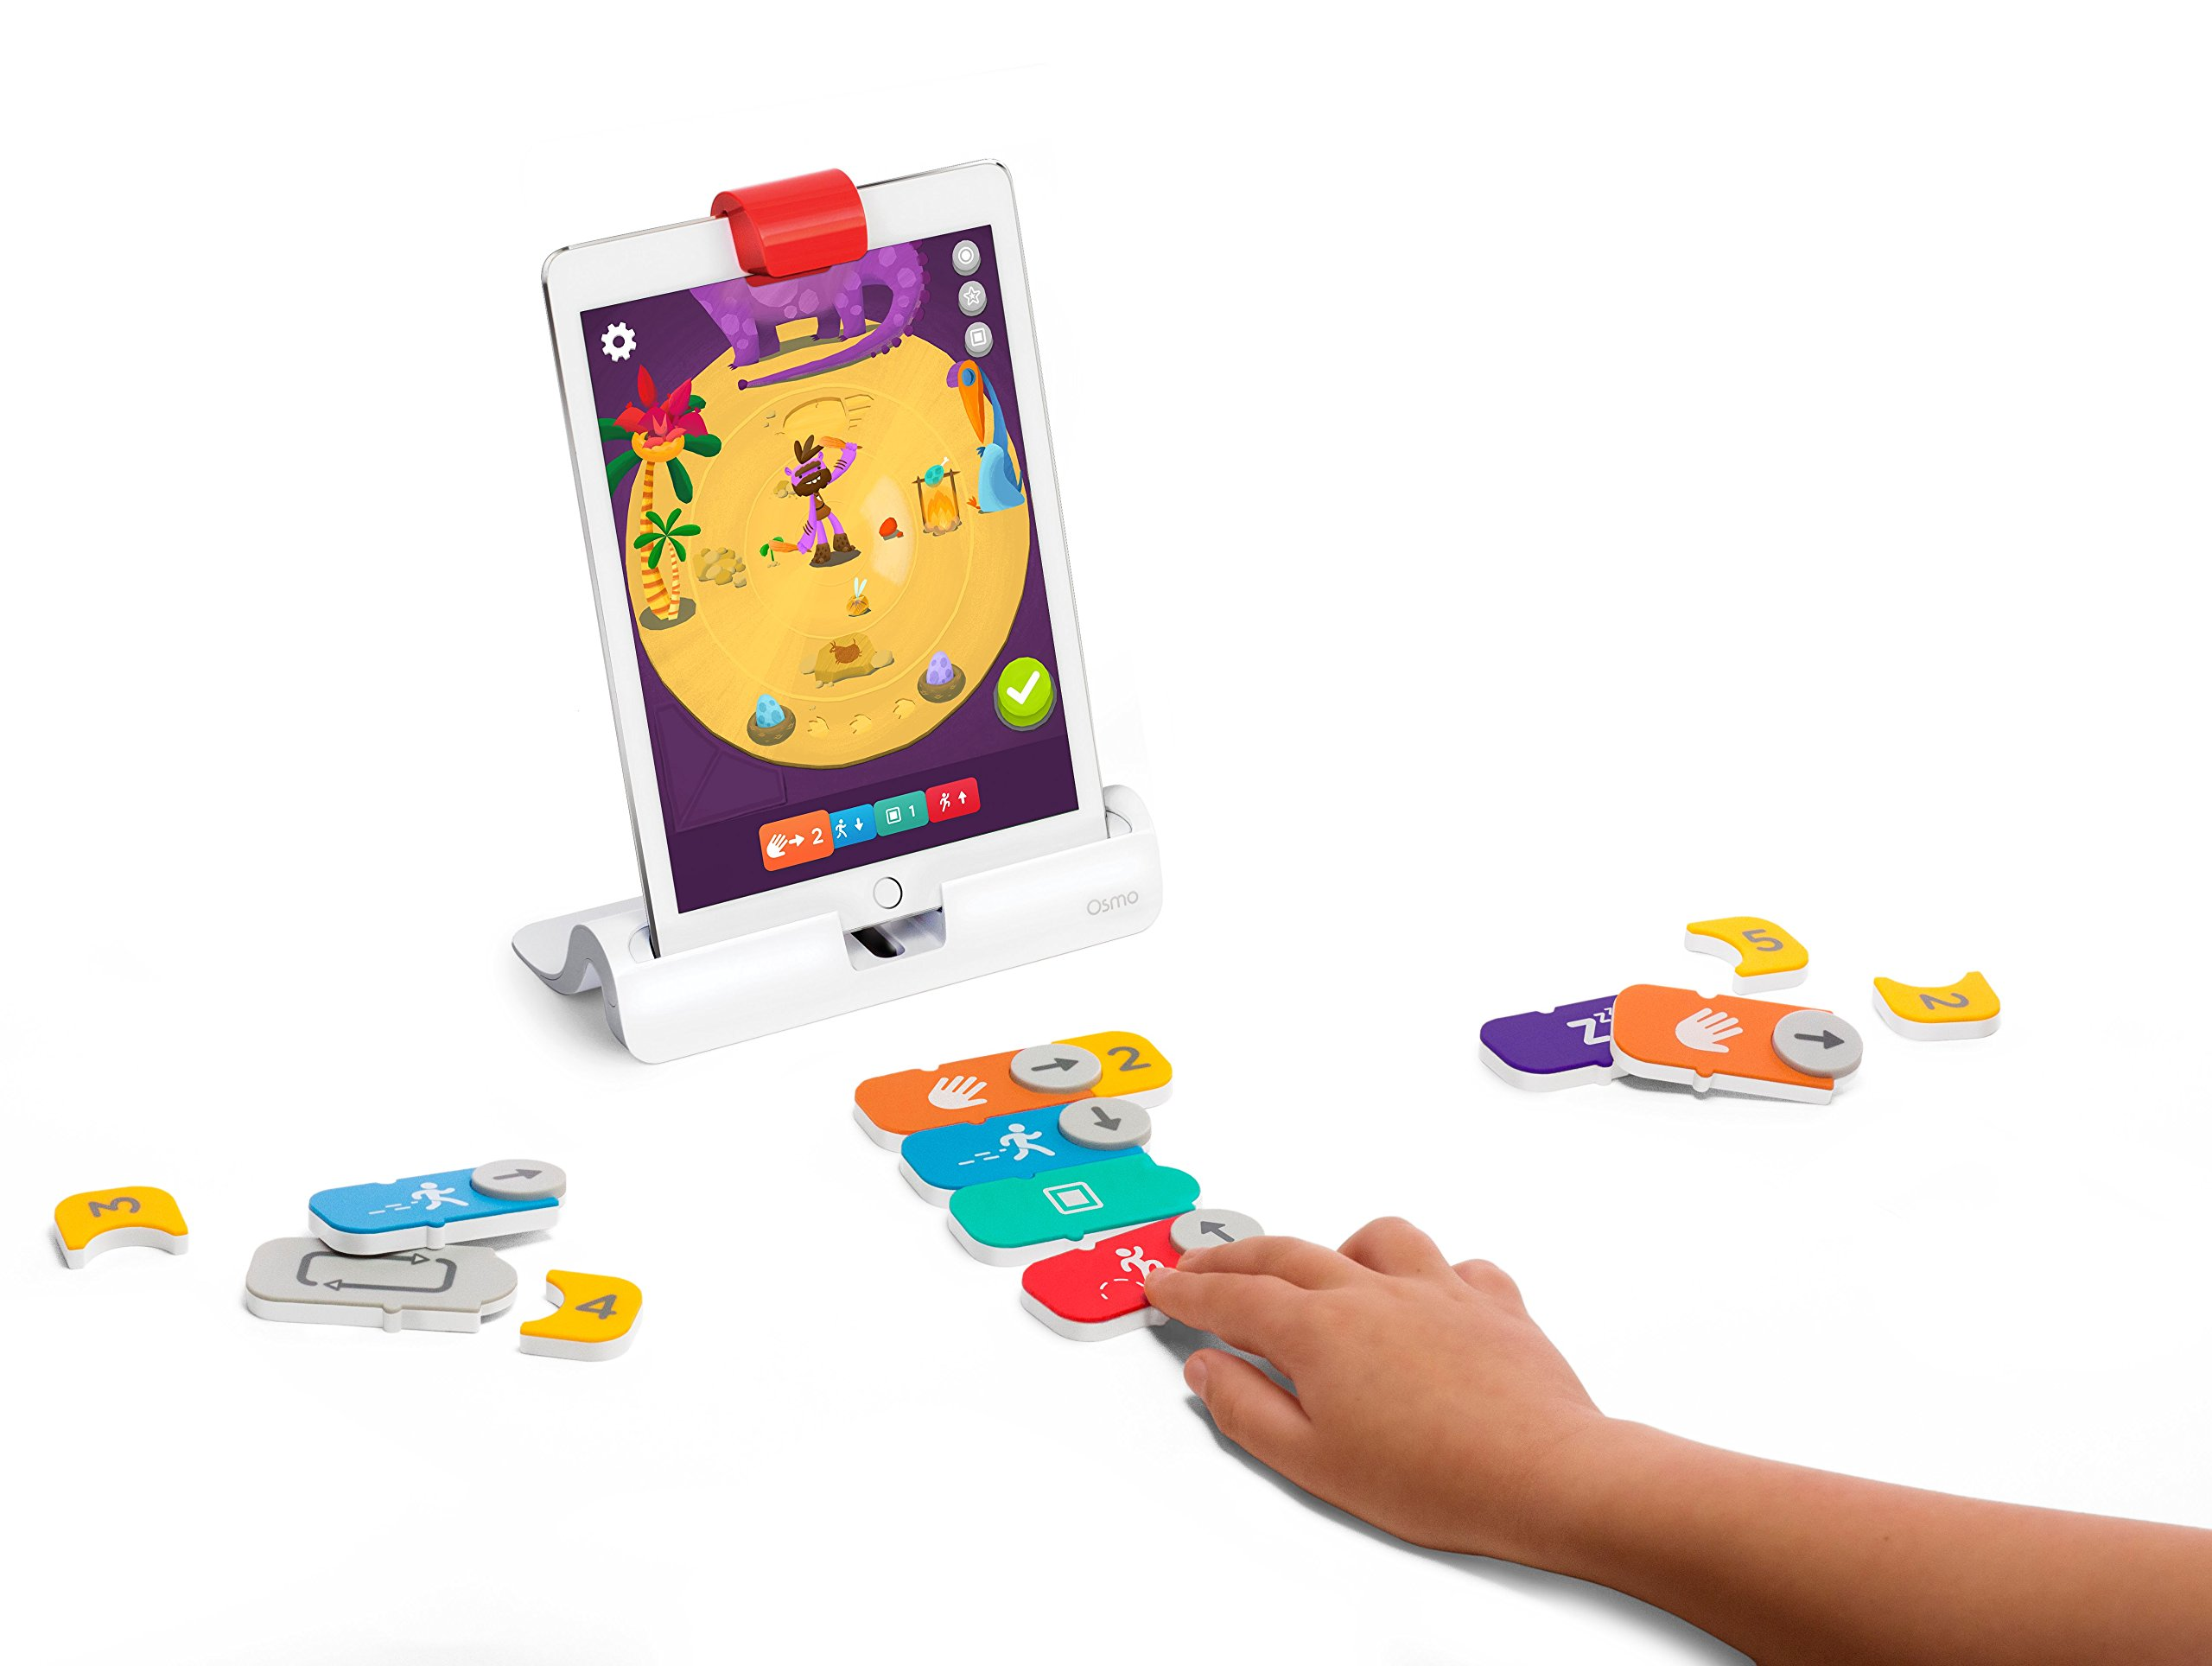 Osmo - Coding Jam - Ages 6-12 - Music Creation, Coding & Problem Solving - For iPad and Fire Tablet (Osmo Base Required) by Osmo (Image #2)